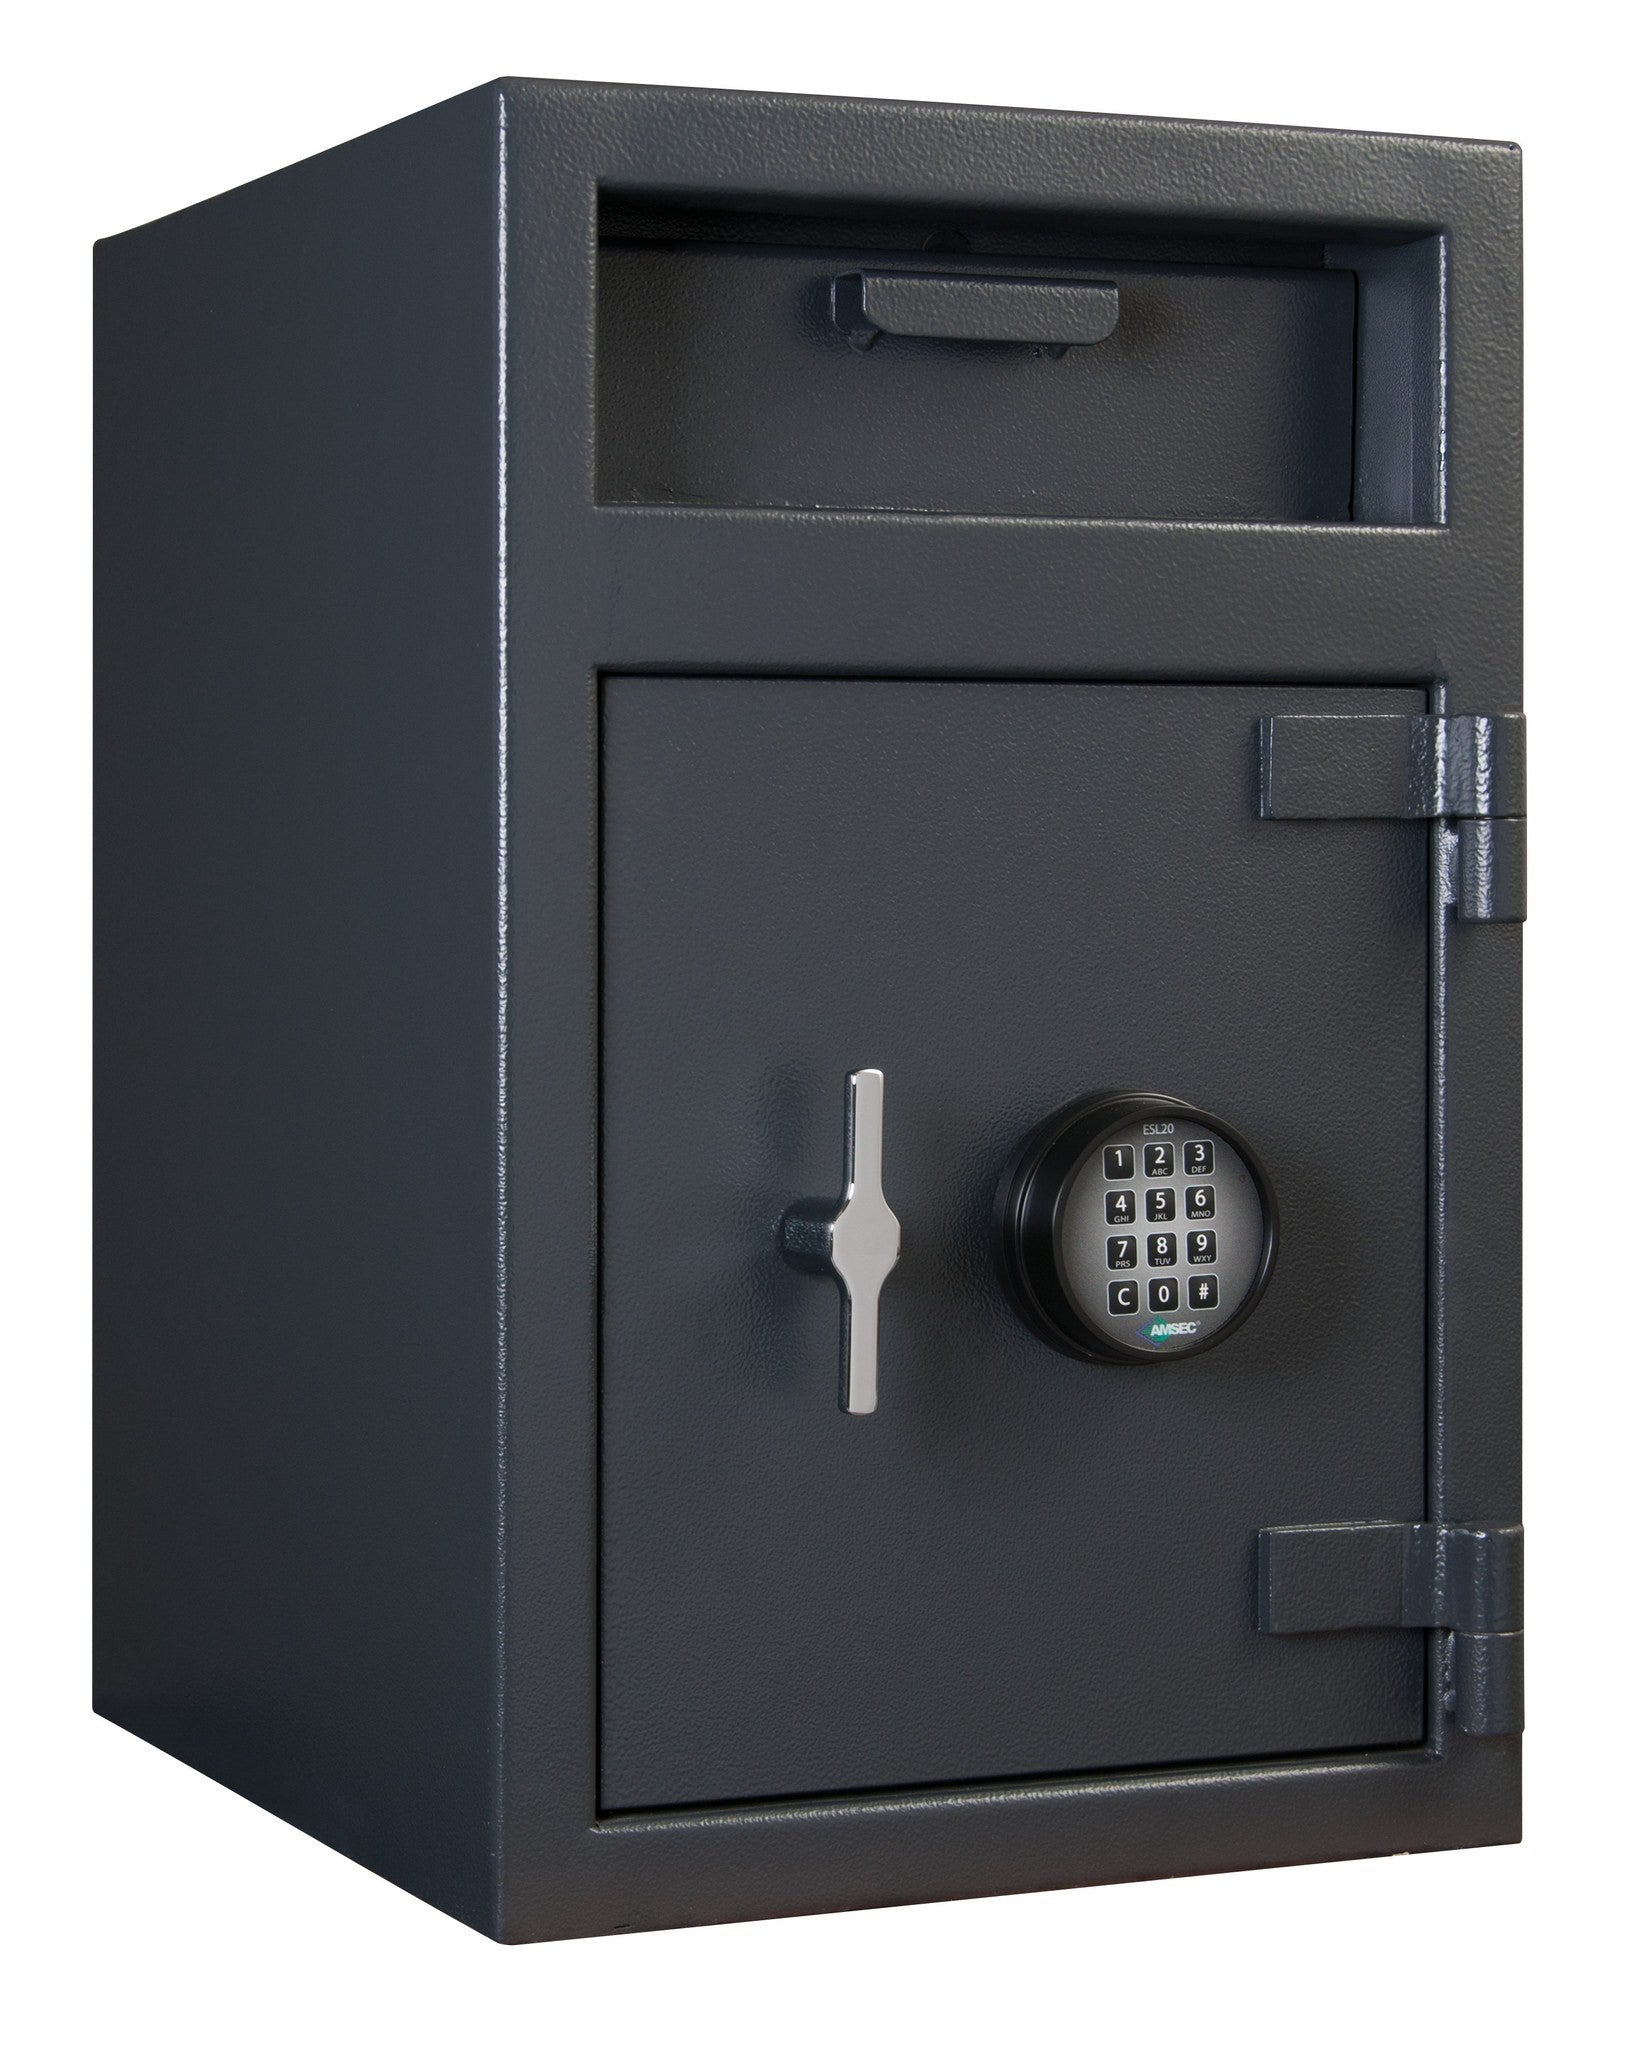 AMSEC DSF2516E2 Front Loading Till Storage Depository Safe